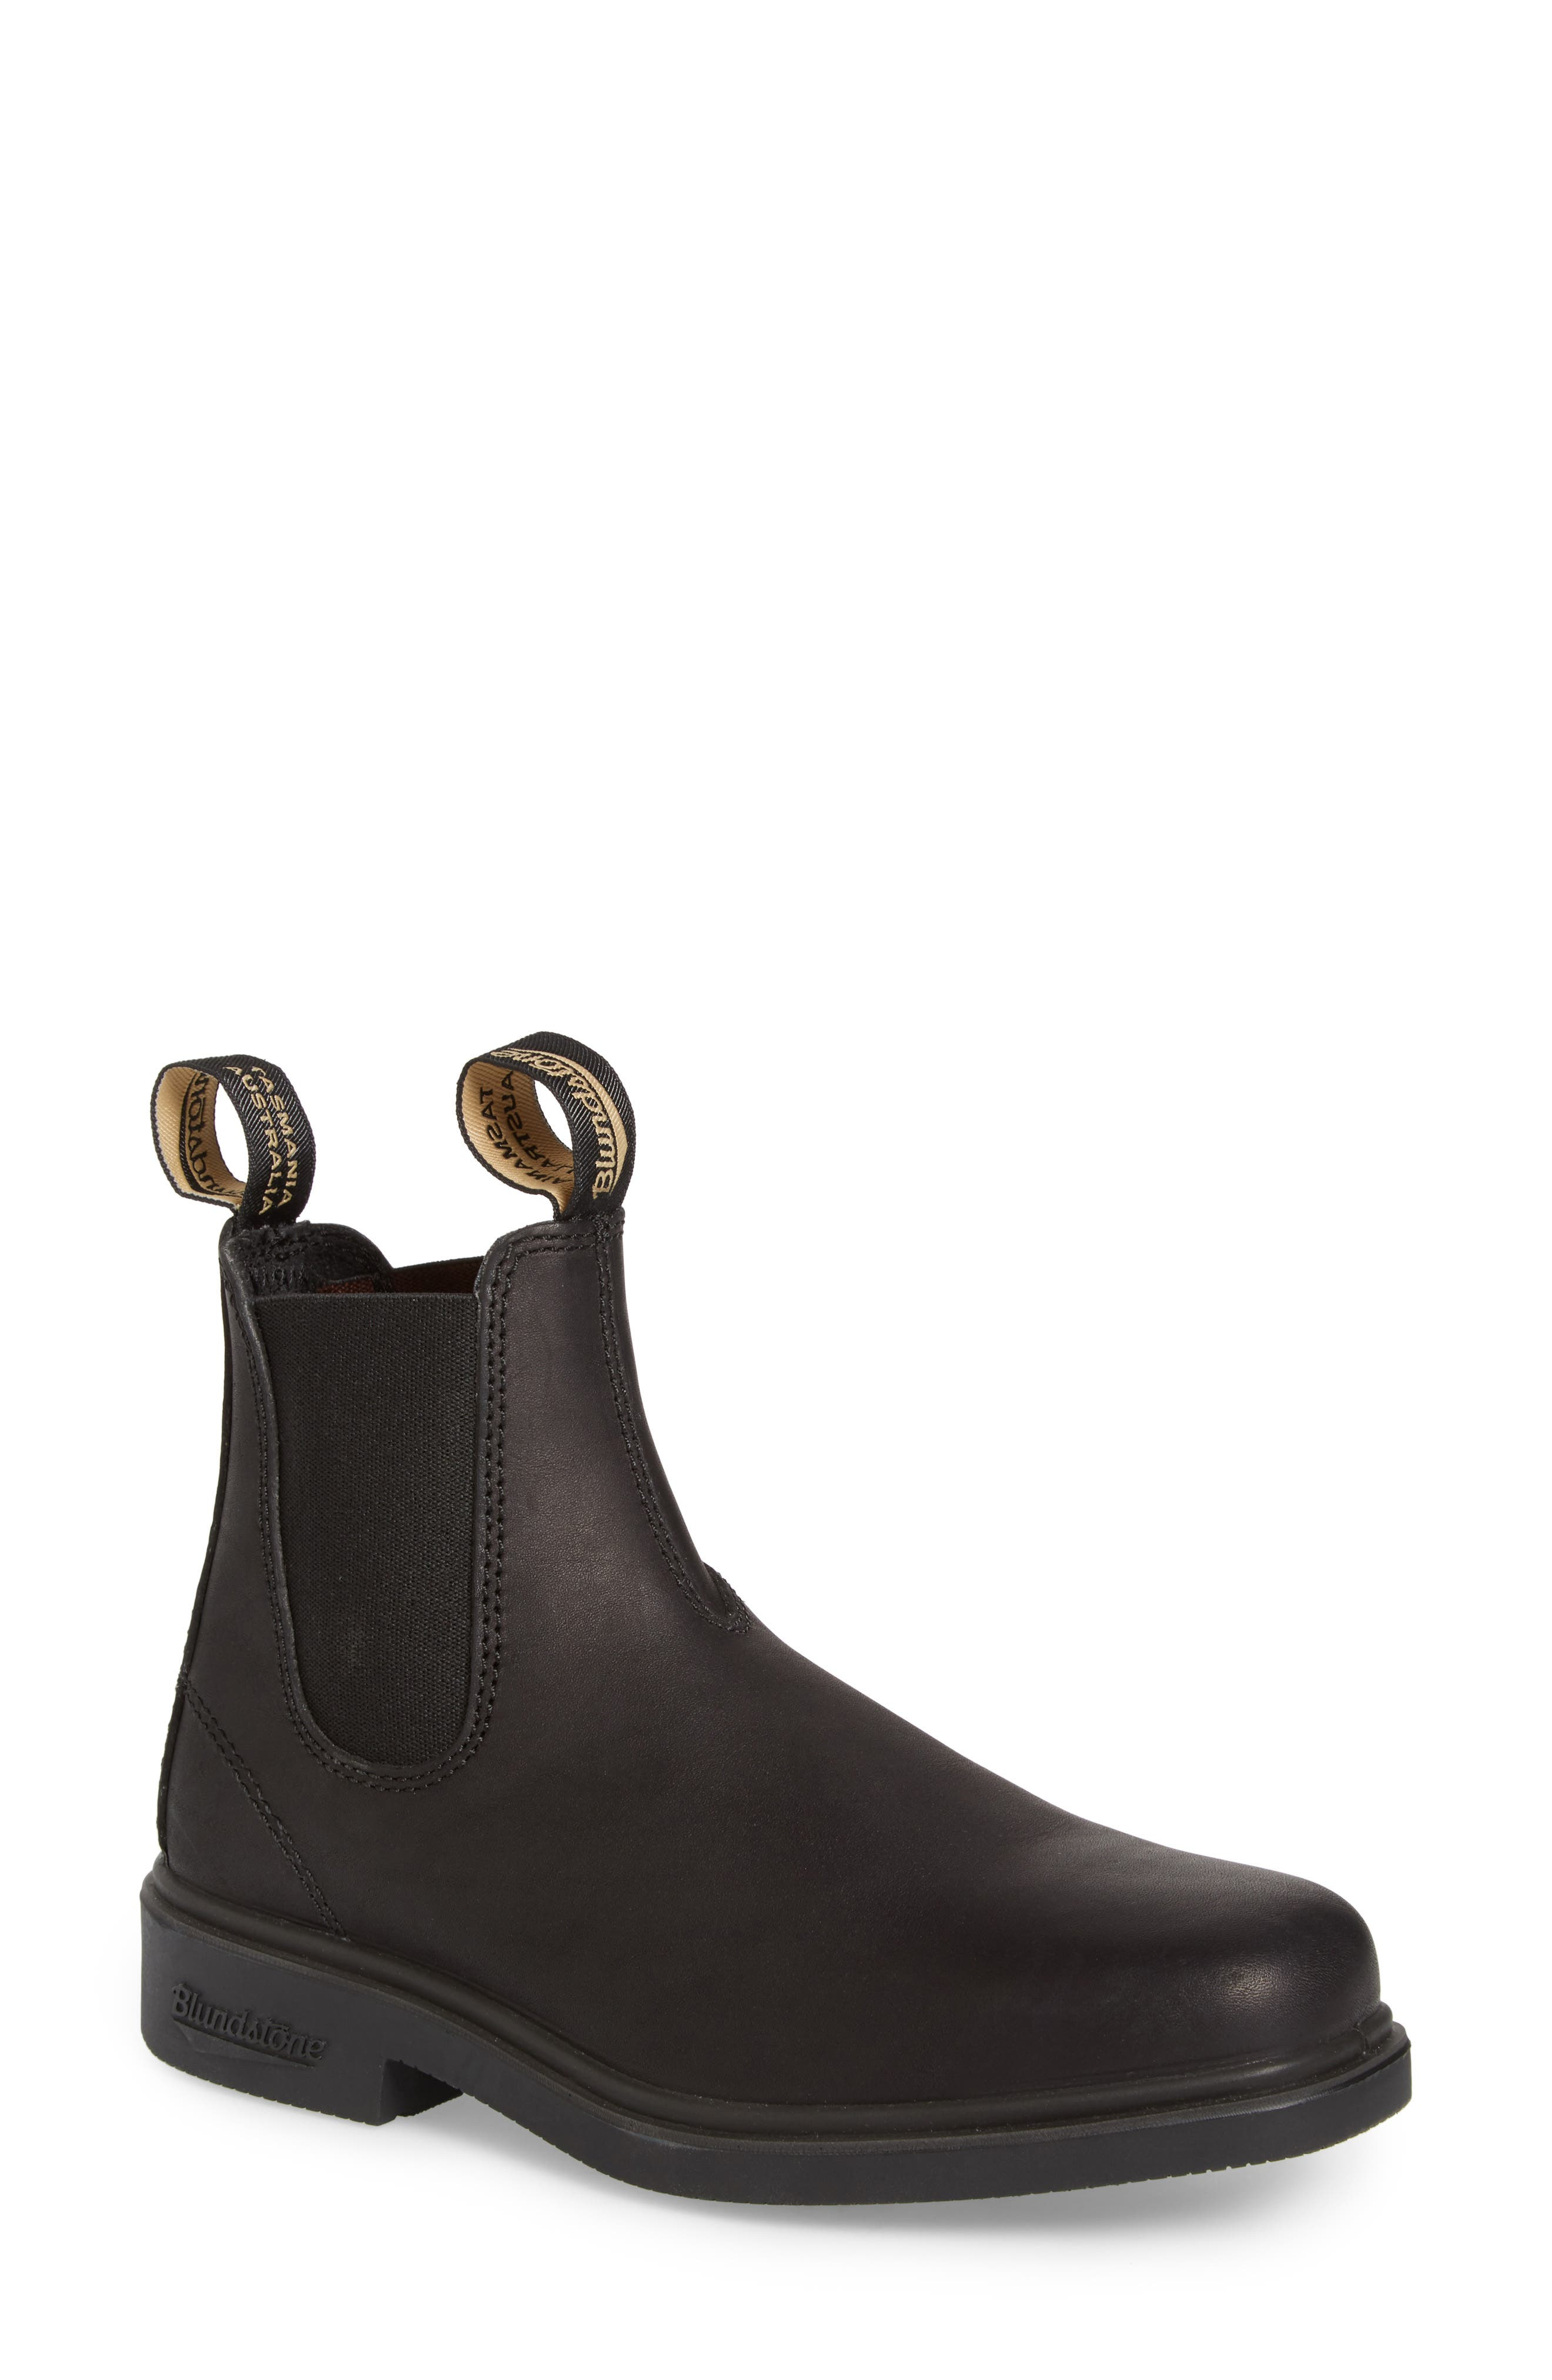 BLUNDSTONE FOOTWEAR Chelsea Boot, Main, color, BLACK LEATHER